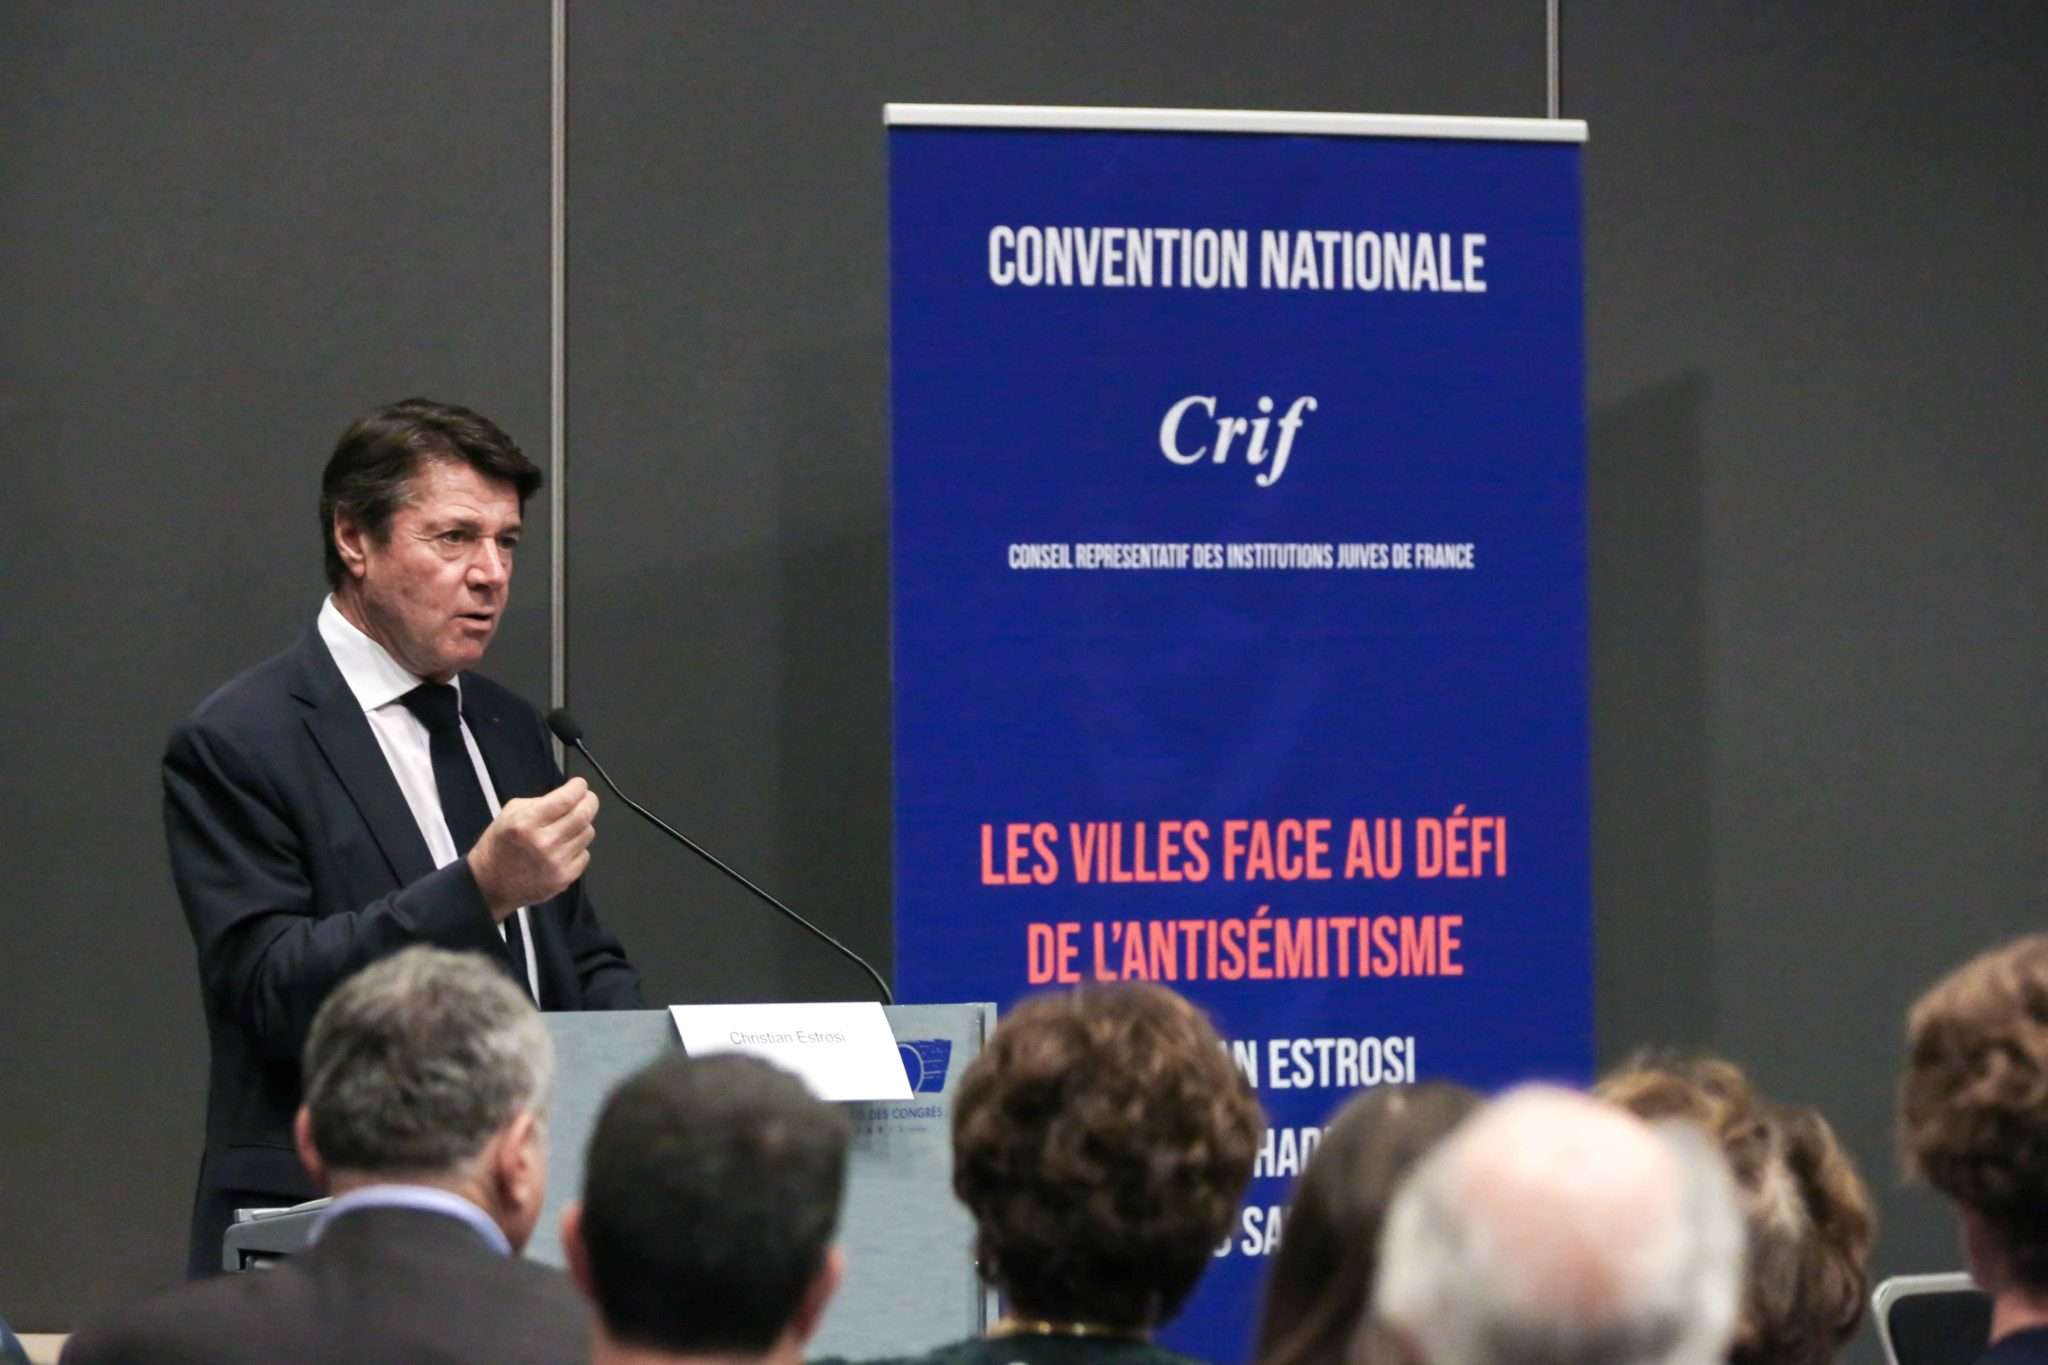 Mayor of the southern Frency city of Nice Christian Estrosi takes part in the 10th national convention of the Representative Council of Jewish Institutions of France (CRIF - Conseil Representatif des Institutions juives de France) on November 17, 2019, at